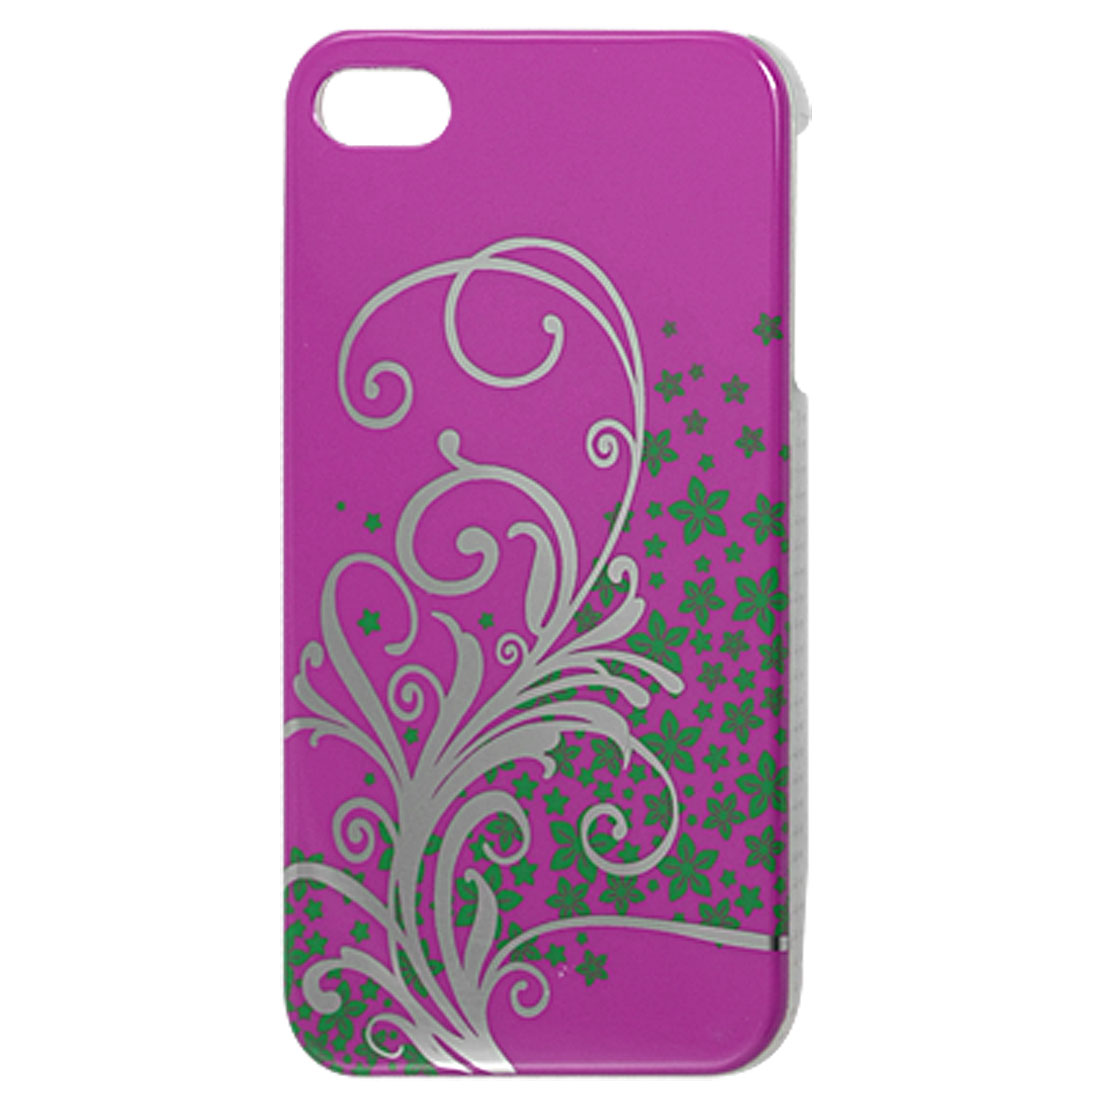 IMD Green Flowers Fuchsia Hard Plastic Back Case for iPhone 4G 4GS